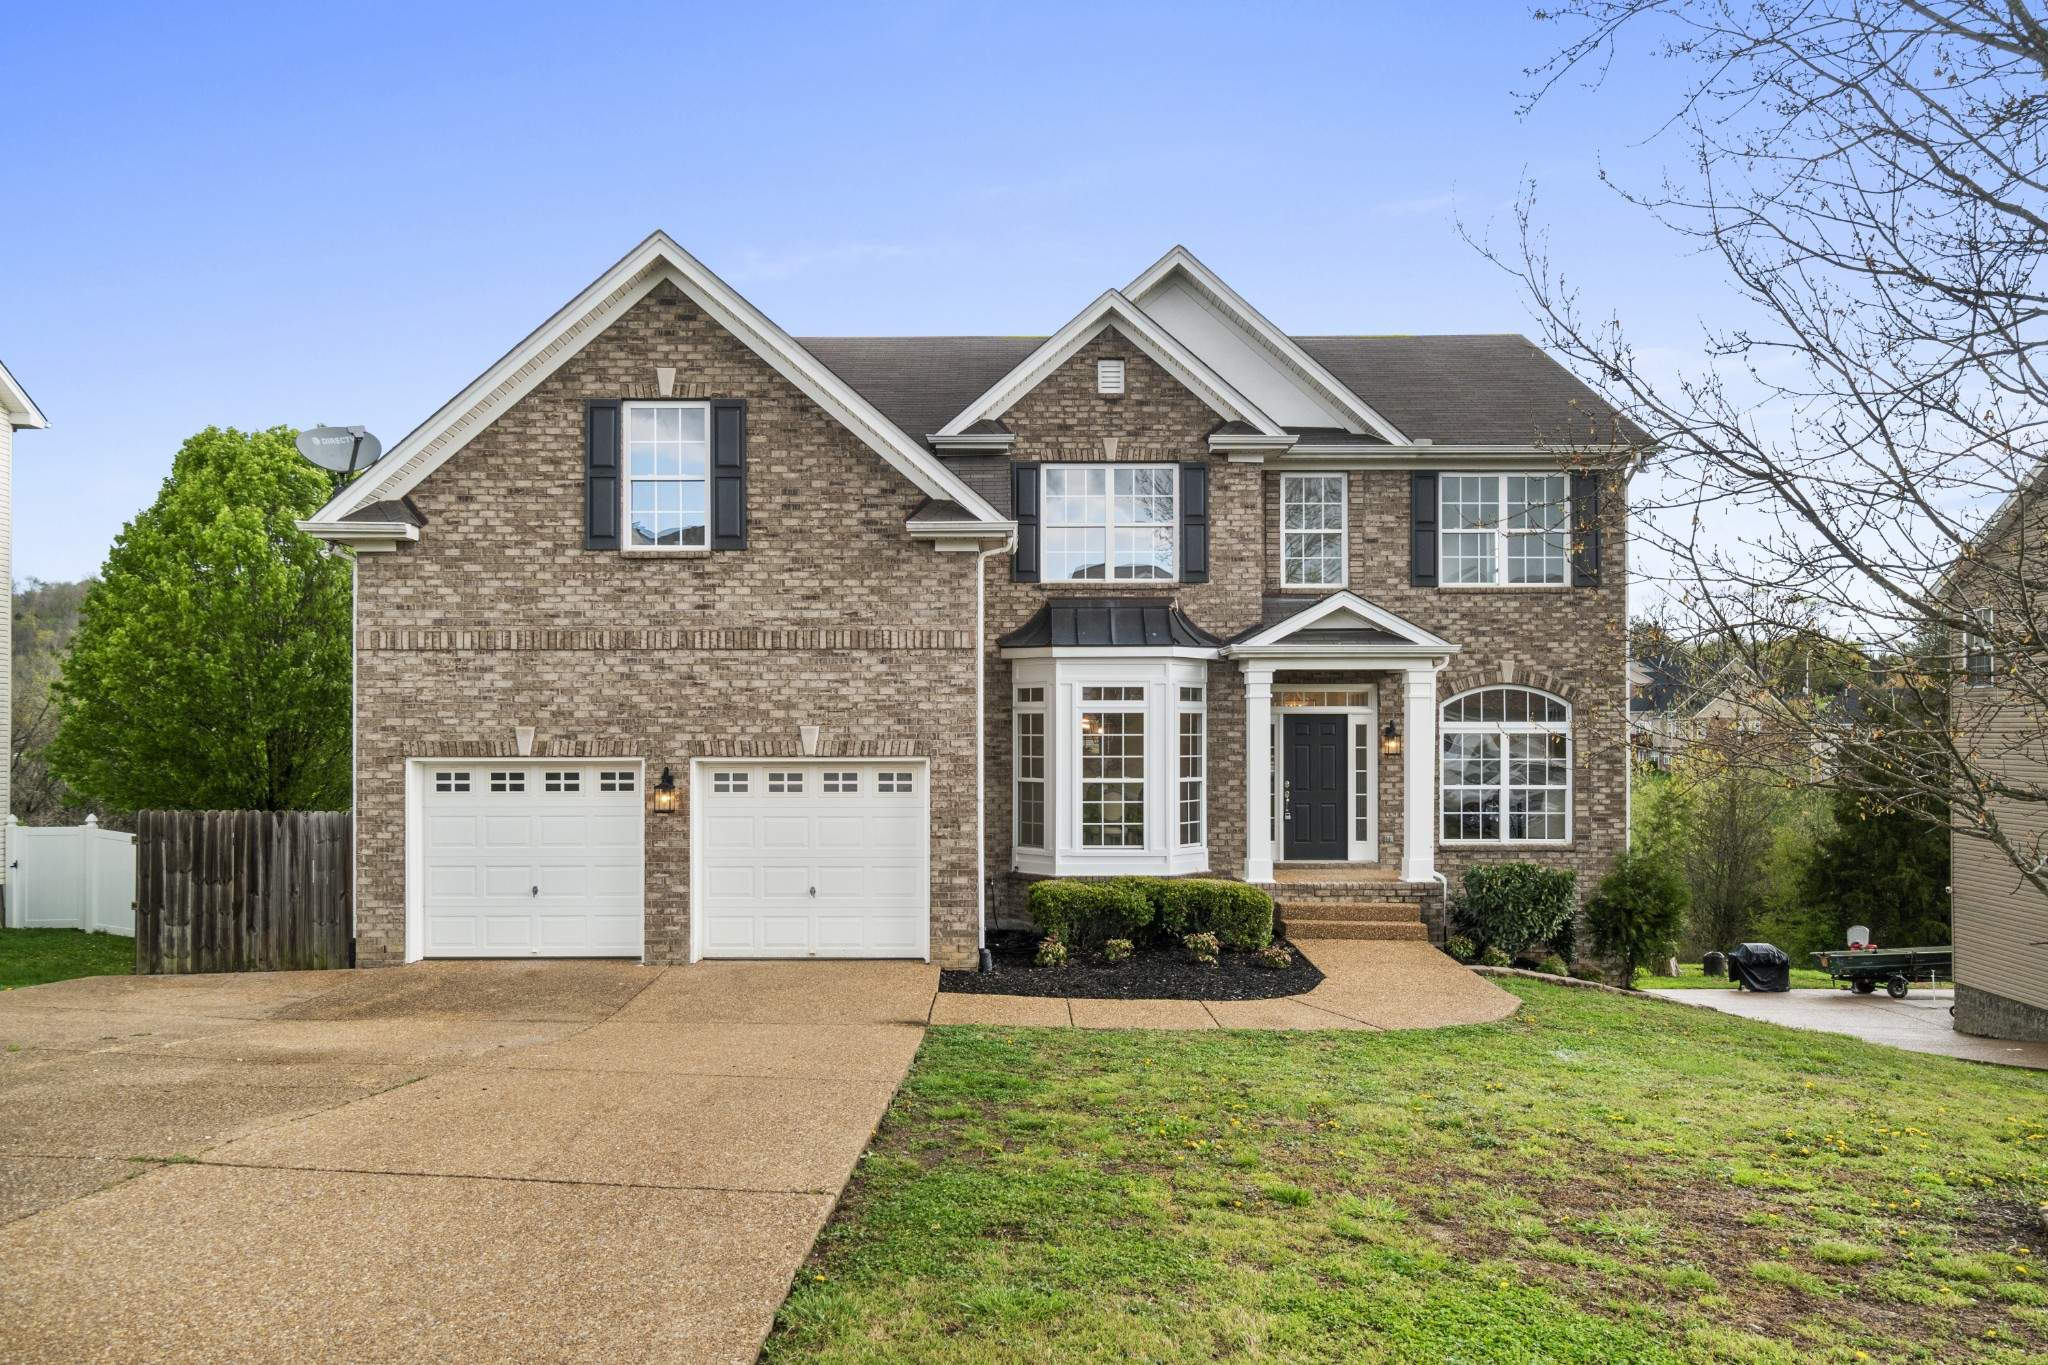 877 Loretta Dr Property Photo - Goodlettsville, TN real estate listing